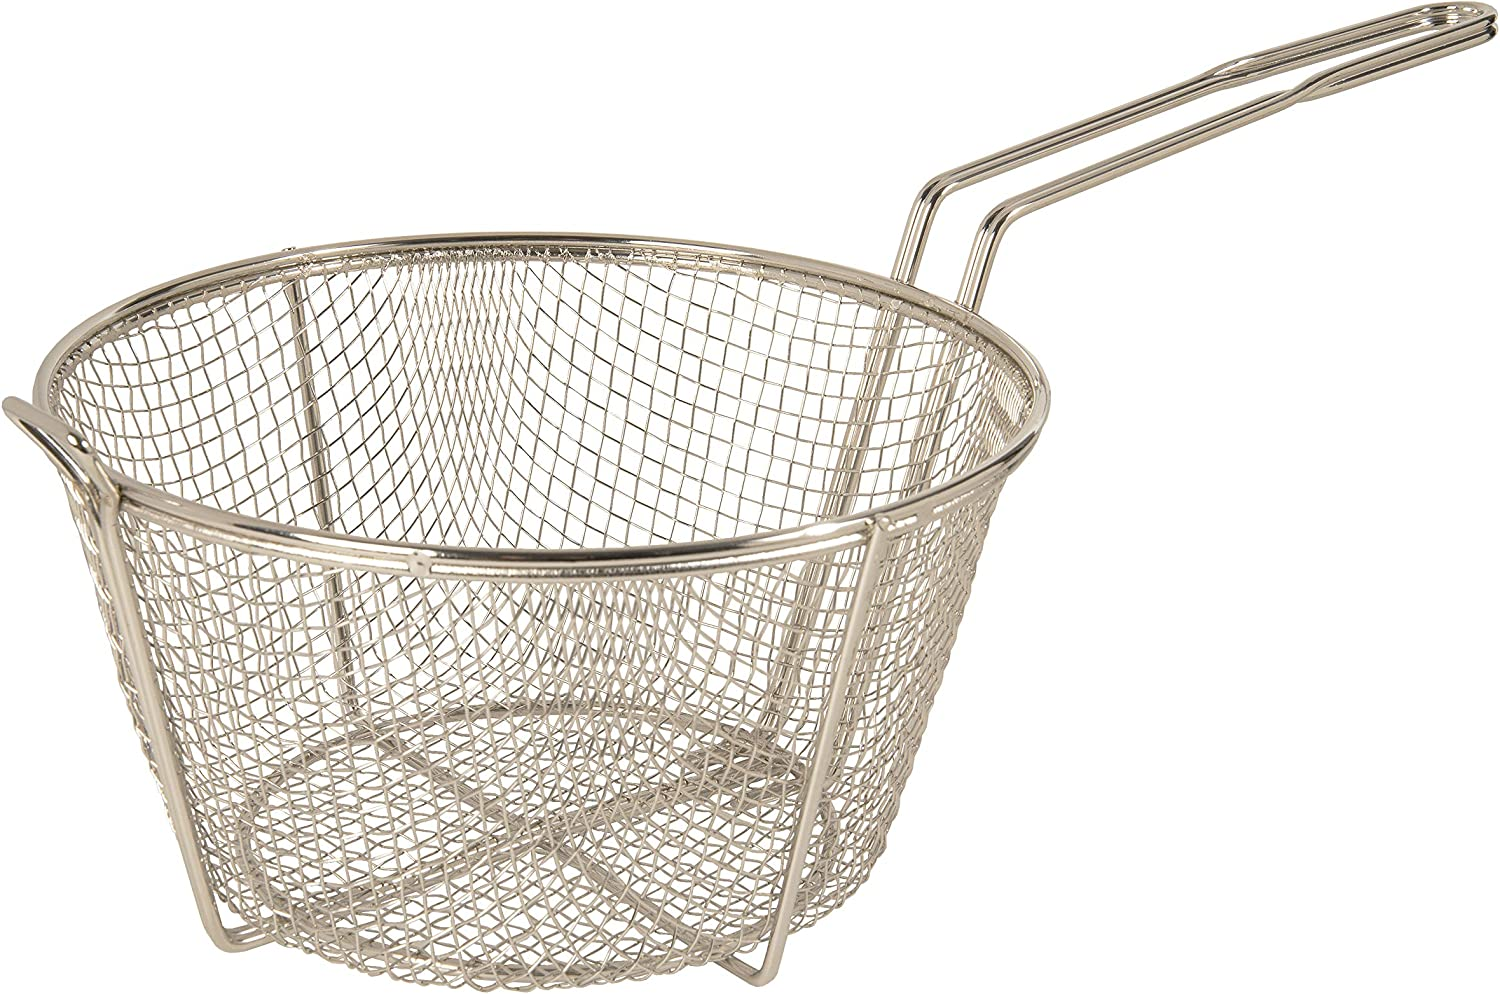 "Update International (FB-11) 11 1/2"" Round Wire Fry Basket"